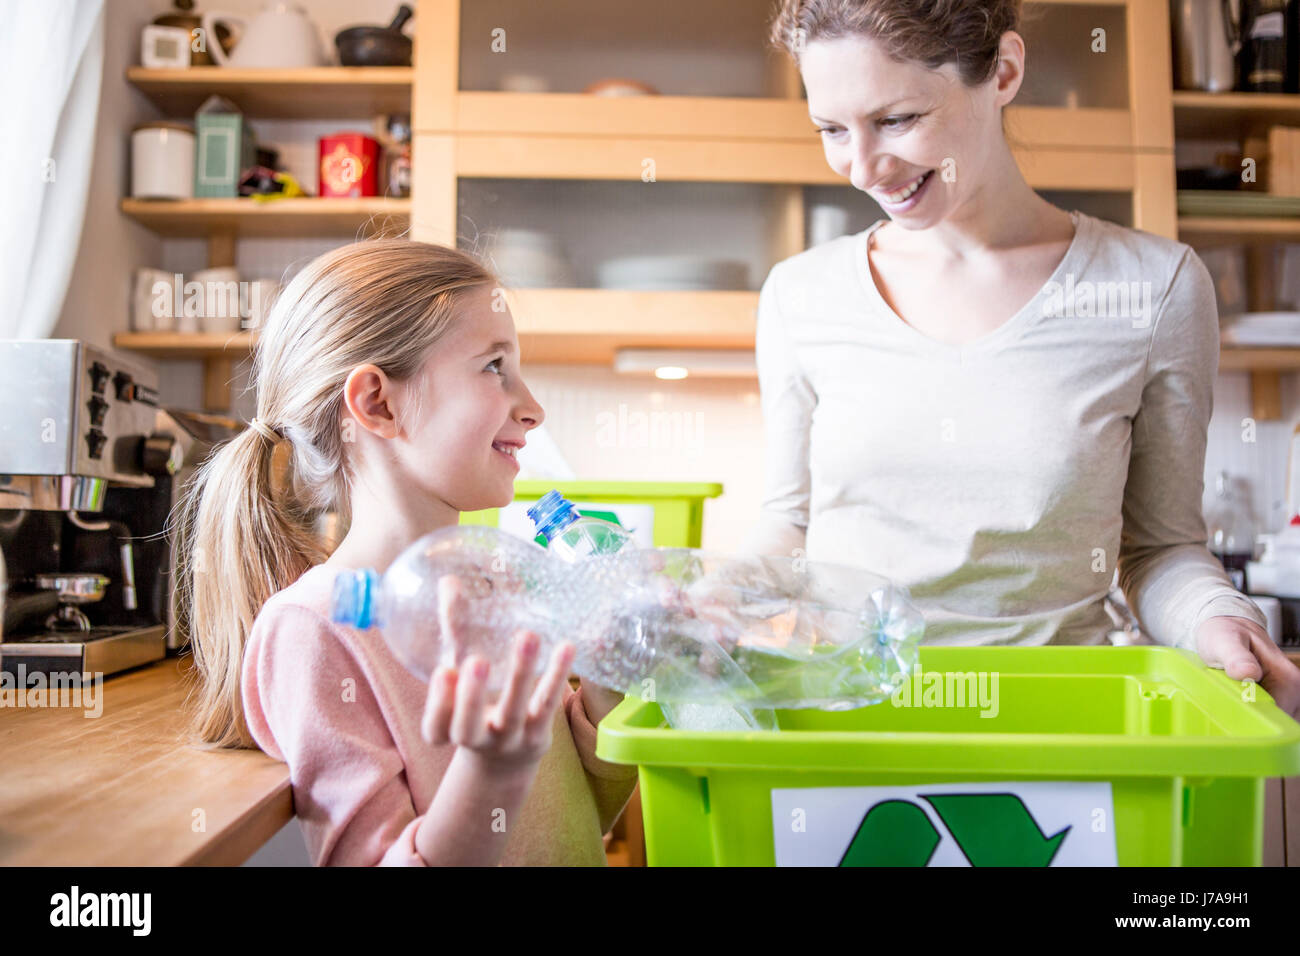 Mother and daughter at home separating waste - Stock Image